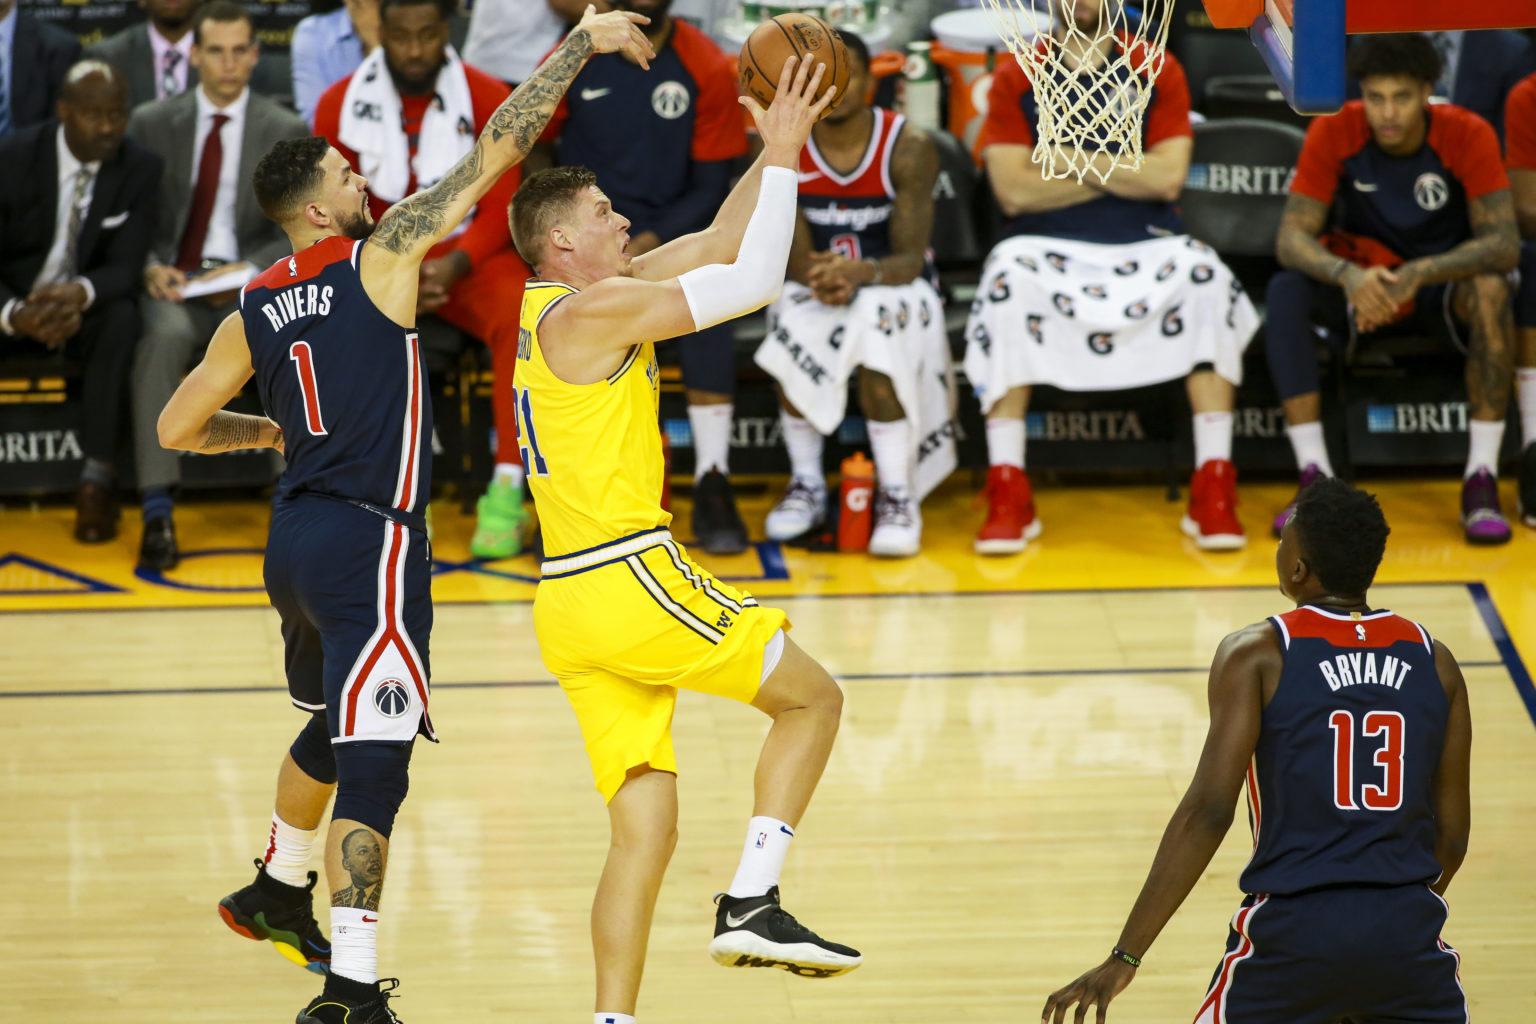 OAKLAND, CA - OCT 24: Forward Jonas Jerebko #21 of the Golden State Warriors drives towards the basket for a score past Austin Rivers #1 of the Washington Wizards during the fourth quarter of the game on October 24, 2018 at Oracle Arena in Oakland, California. (Chris Victorio / Special to S.F. Examiner)